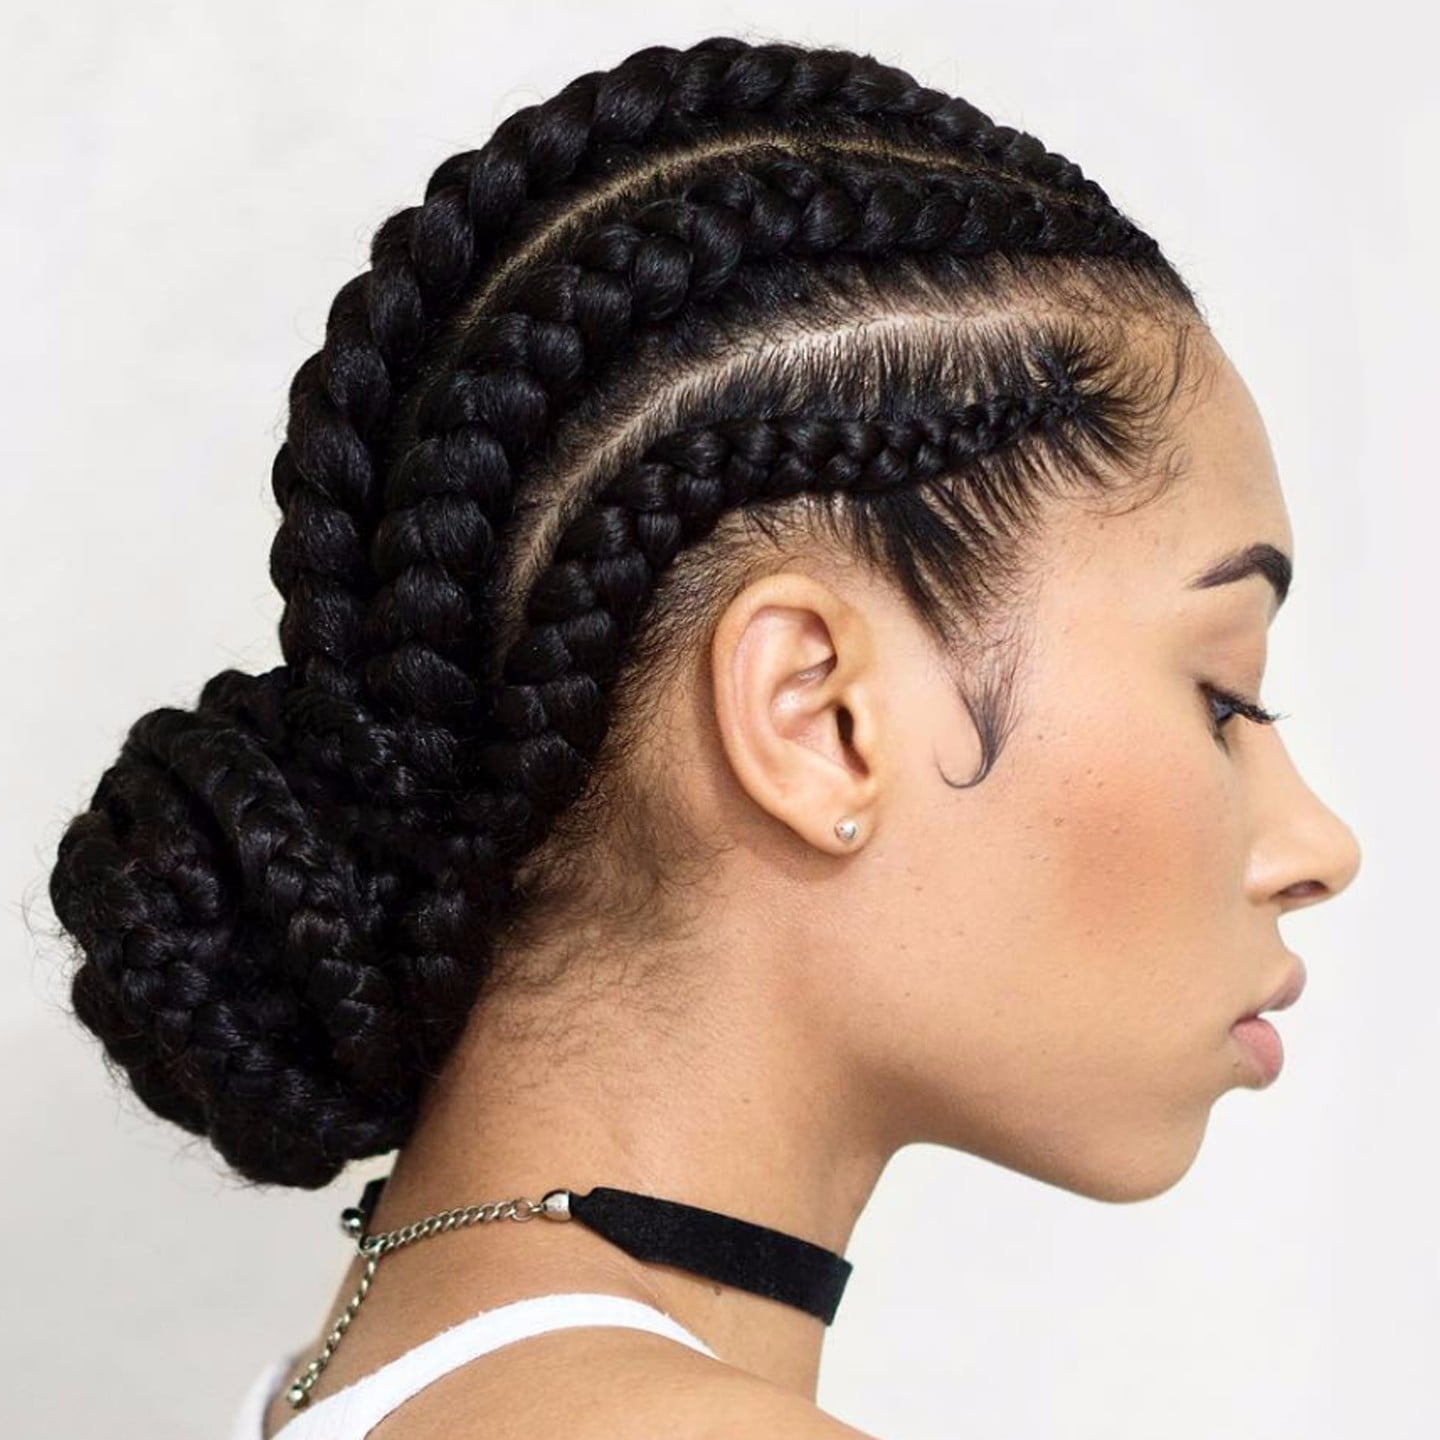 Cornrow braid styles popsugar beauty uk urmus Images